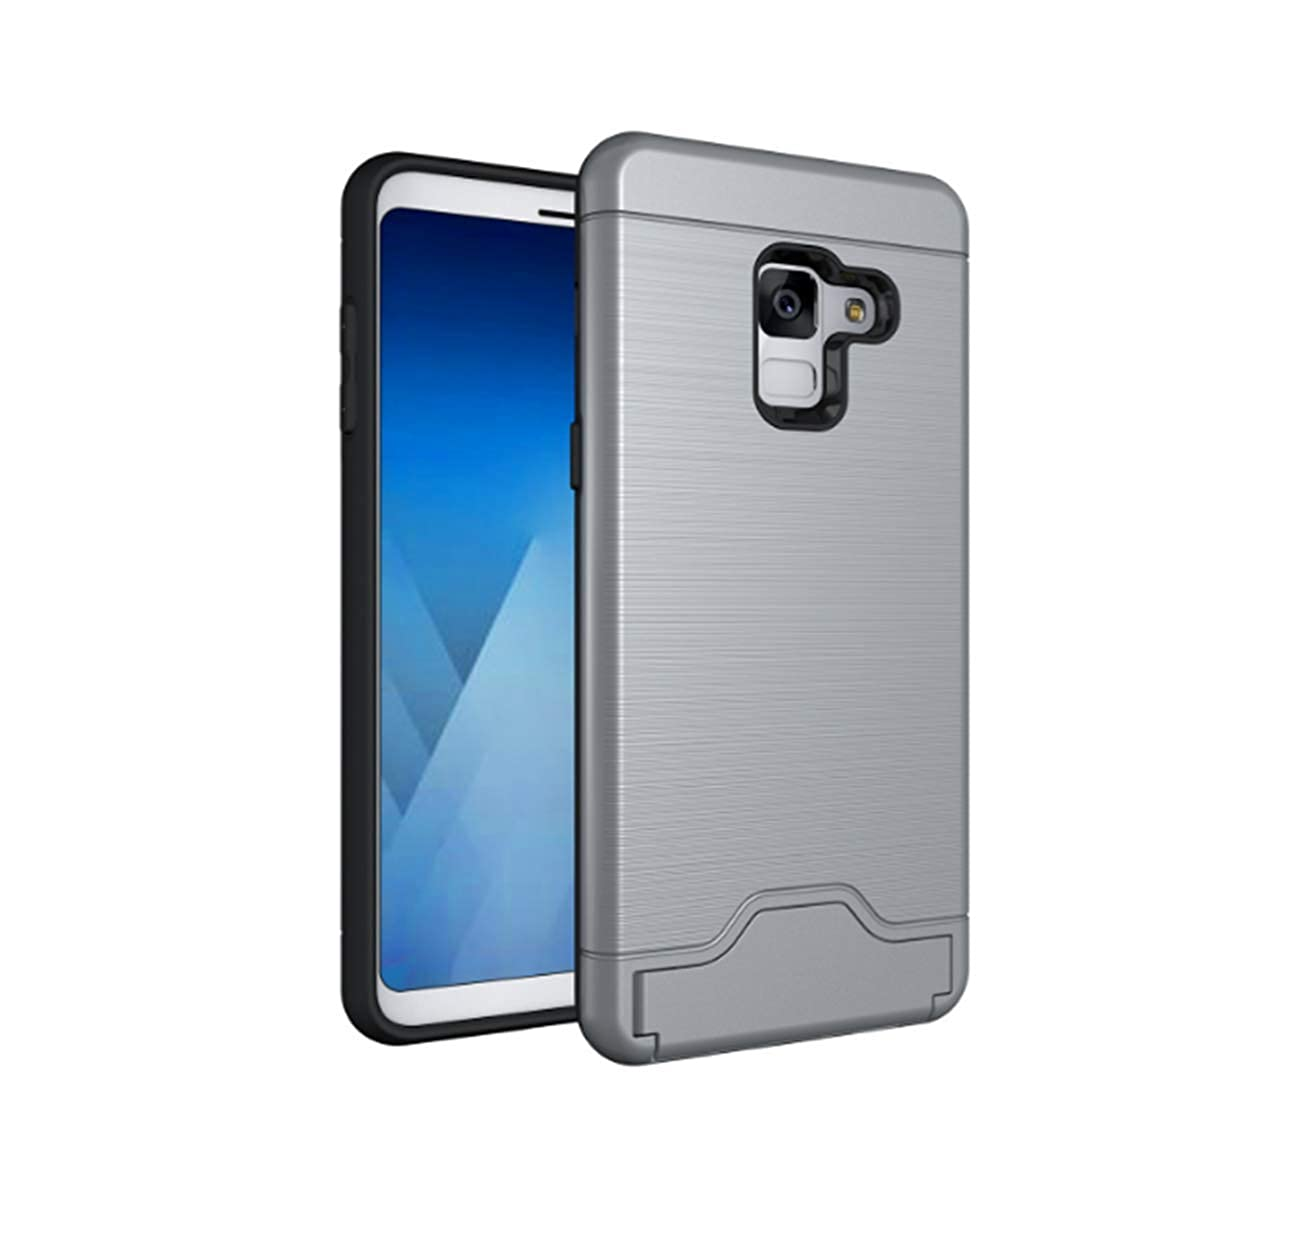 7Pite Lifeproof Case Samsung Galaxy A8 2018, Slim Galaxy A8 Plus Dual Layer Wallet Case Card Holder Shell Kickstand Cover